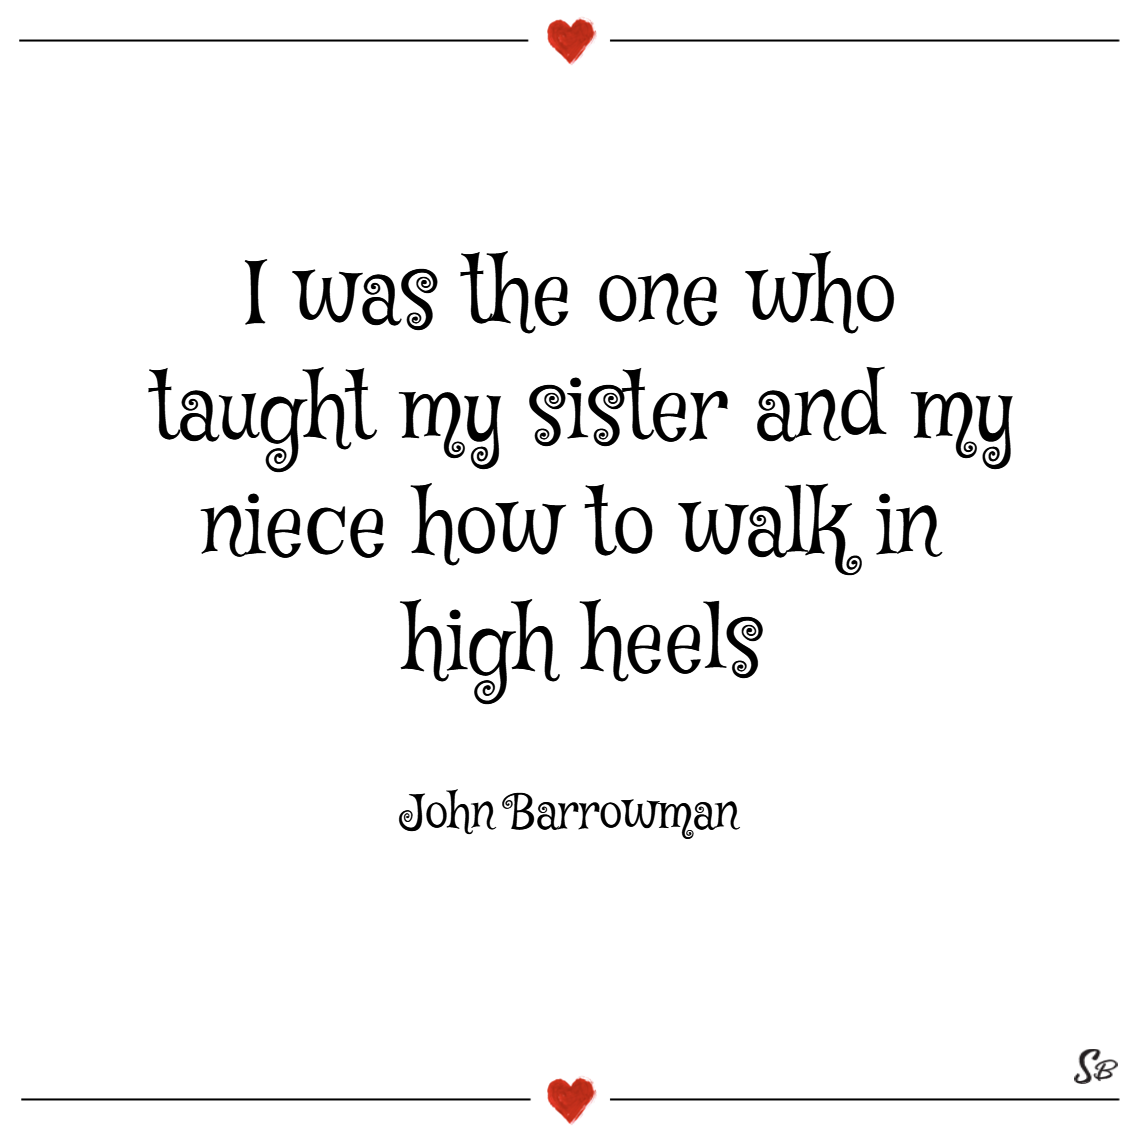 I was the one who taught my sister and my niece how to walk in high heels. – john barrowman